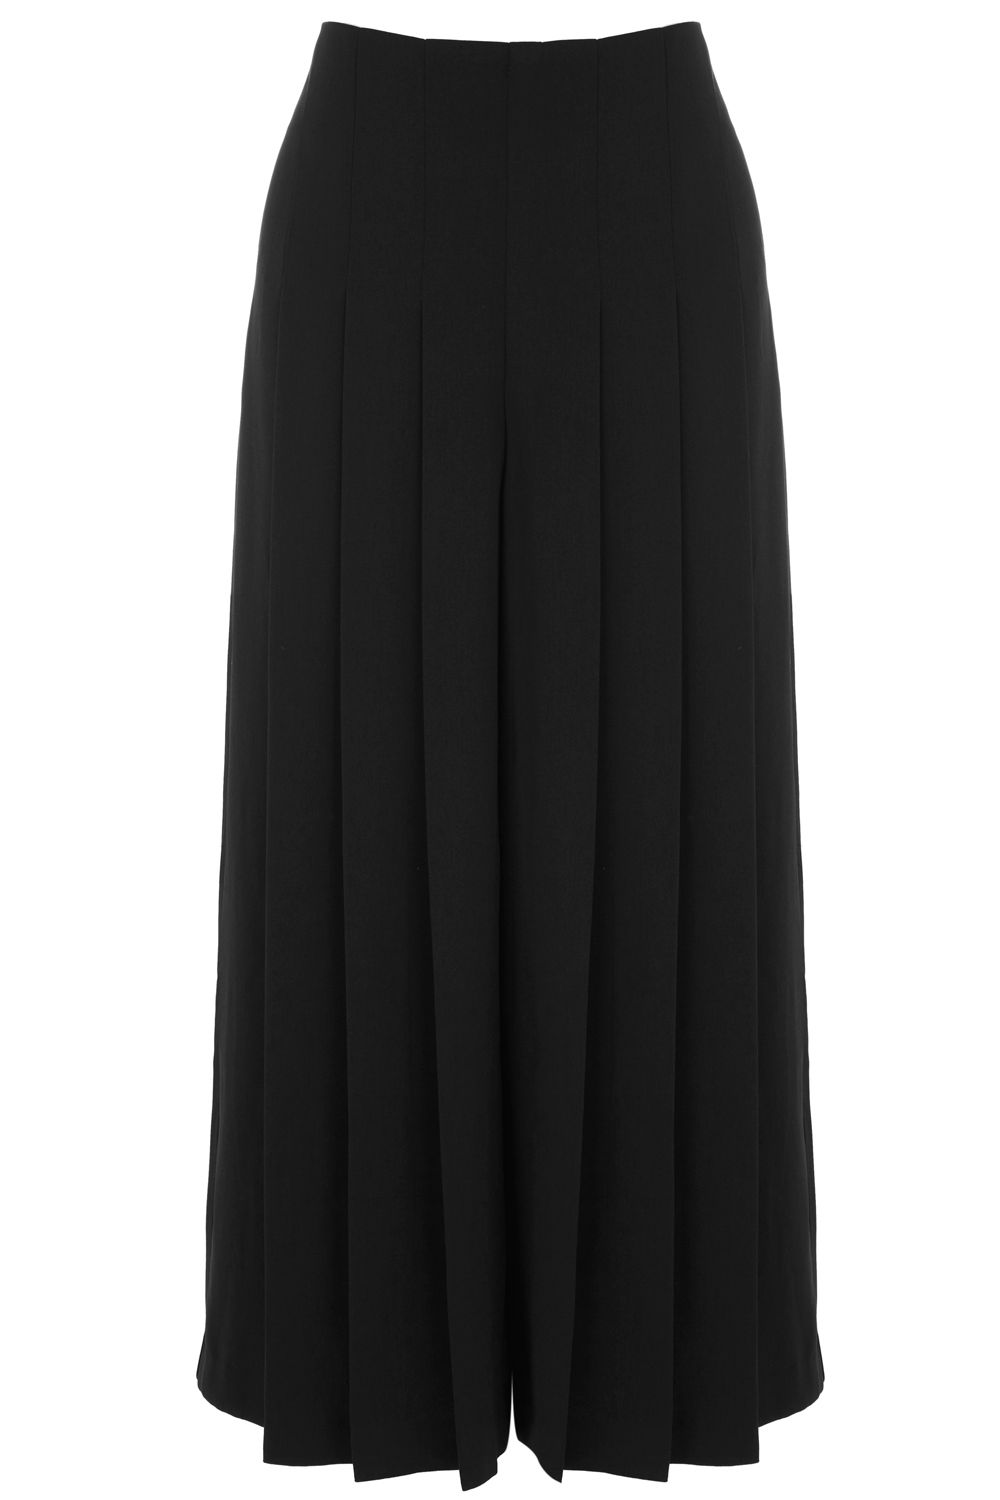 Warehouse Pleated Culottes, Black